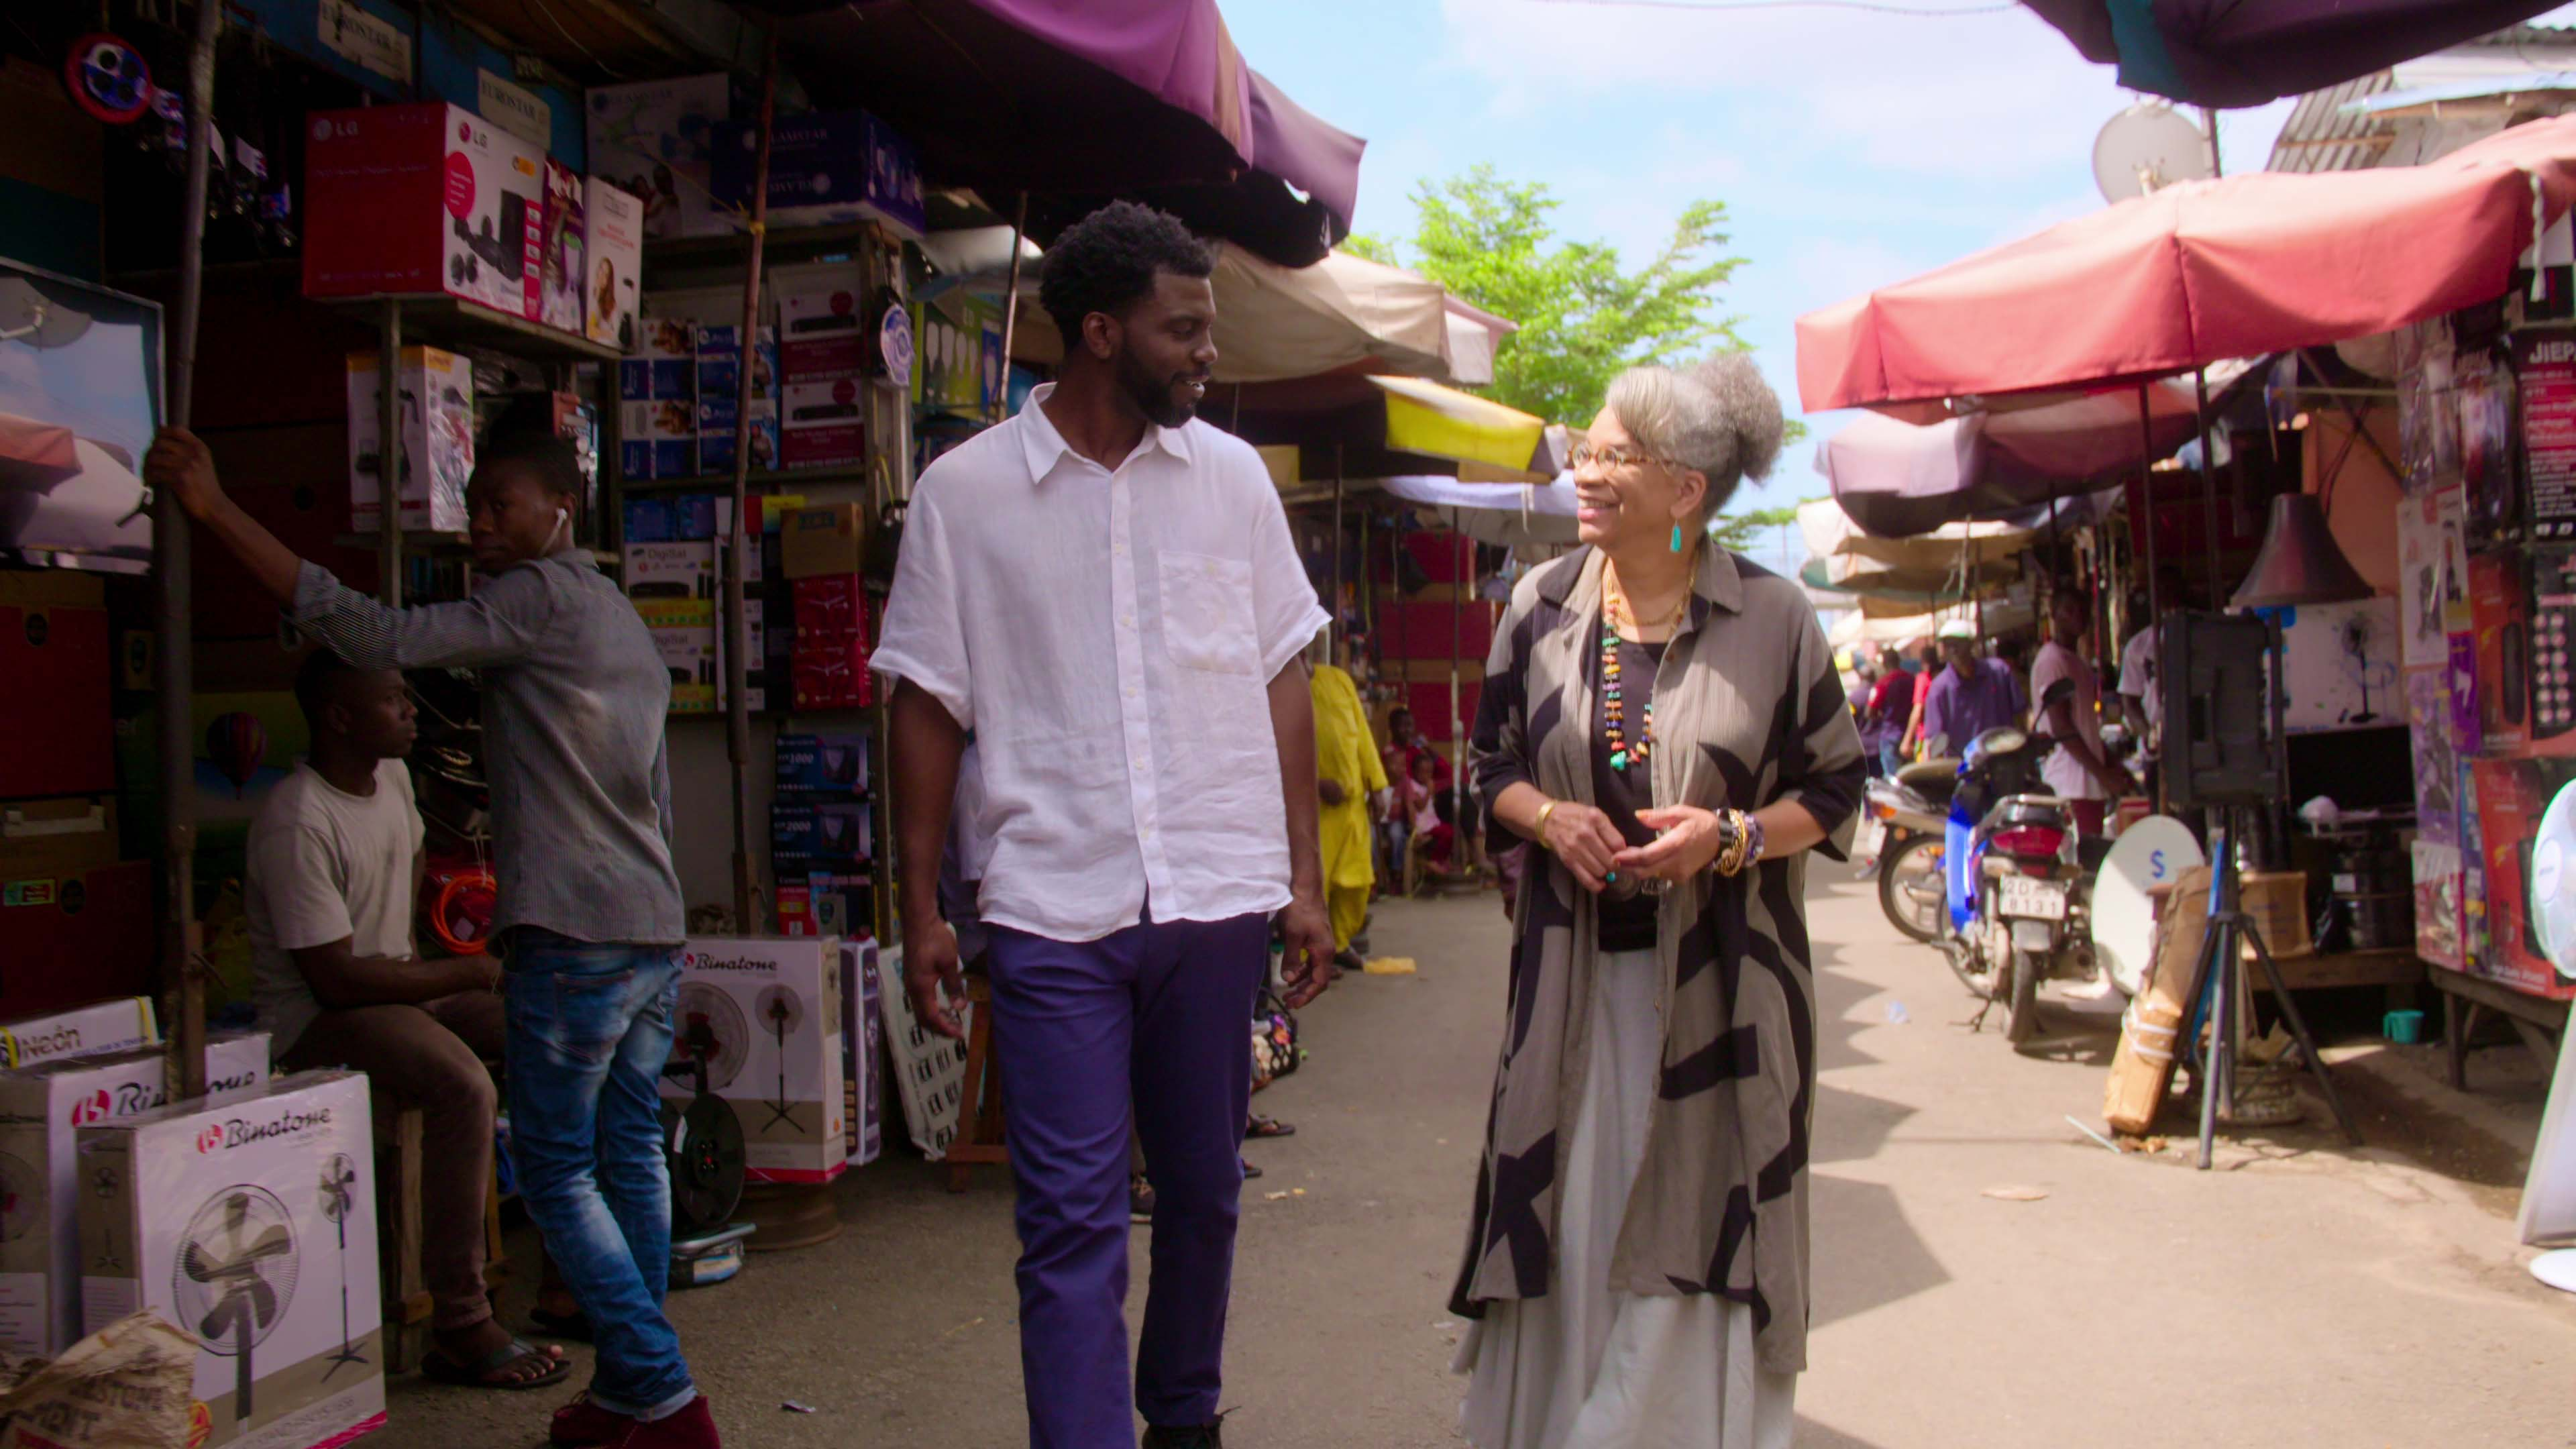 A man and woman walk in an outdoor market